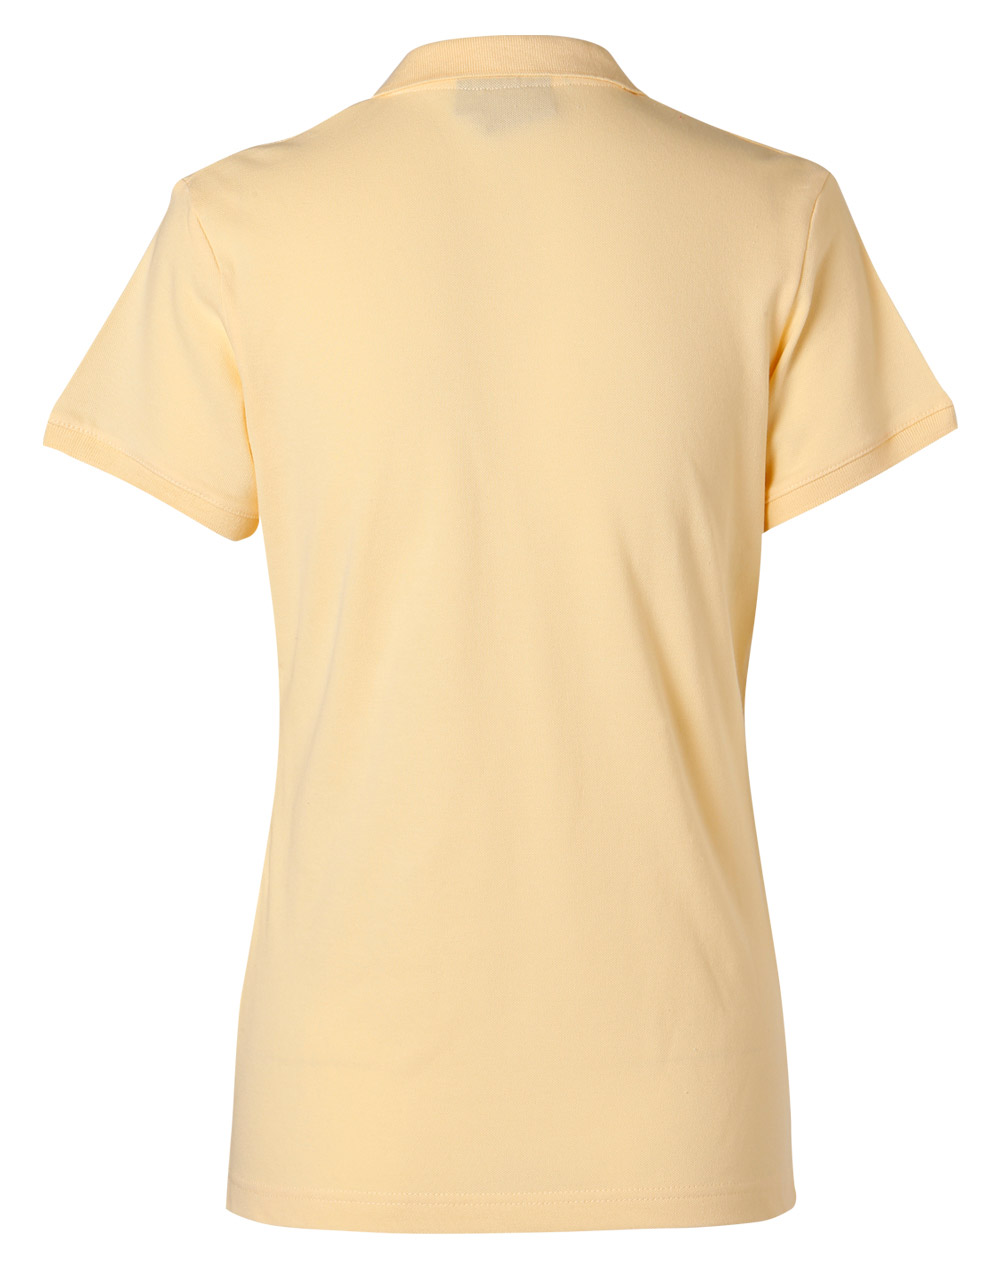 https://s3-ap-southeast-1.amazonaws.com/ws-imgs/POLOSHIRTS/PS40_Lemon_back.jpg